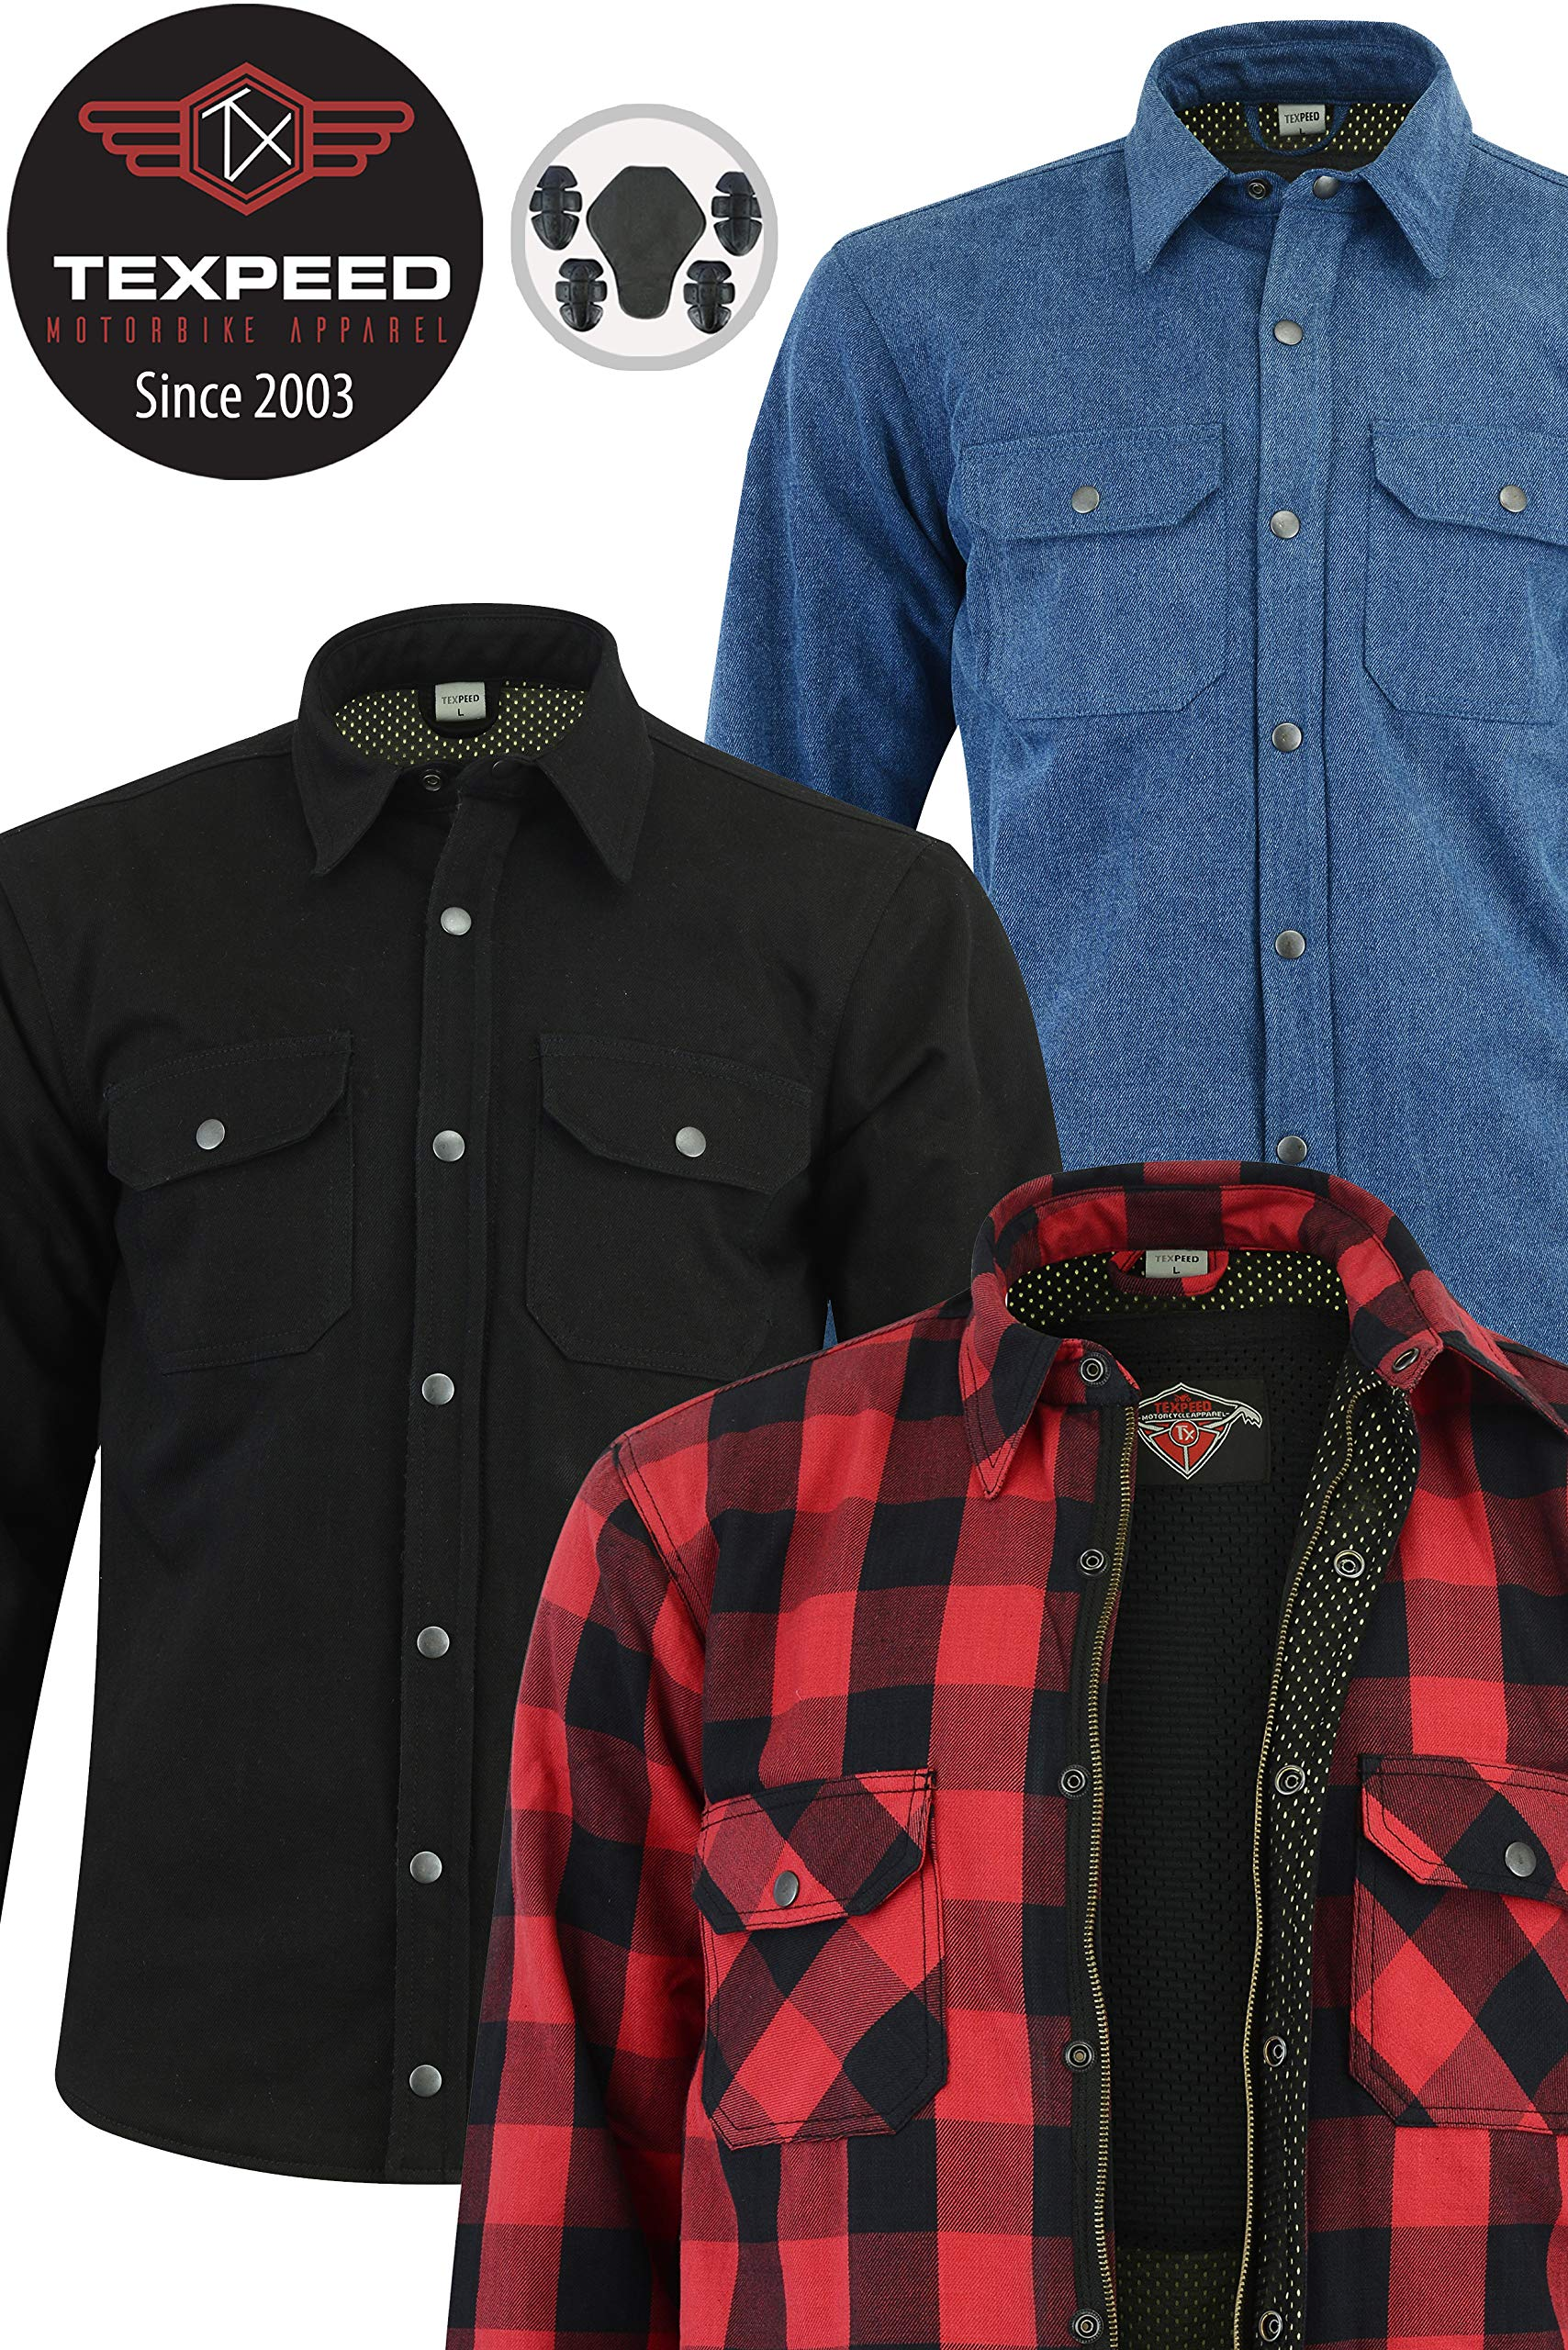 Bikers Gear Australia Kevlar Lined Motorcycle Cruiser Flannel Shirt with CE1621-1 Removable Armour Black//White Size XL